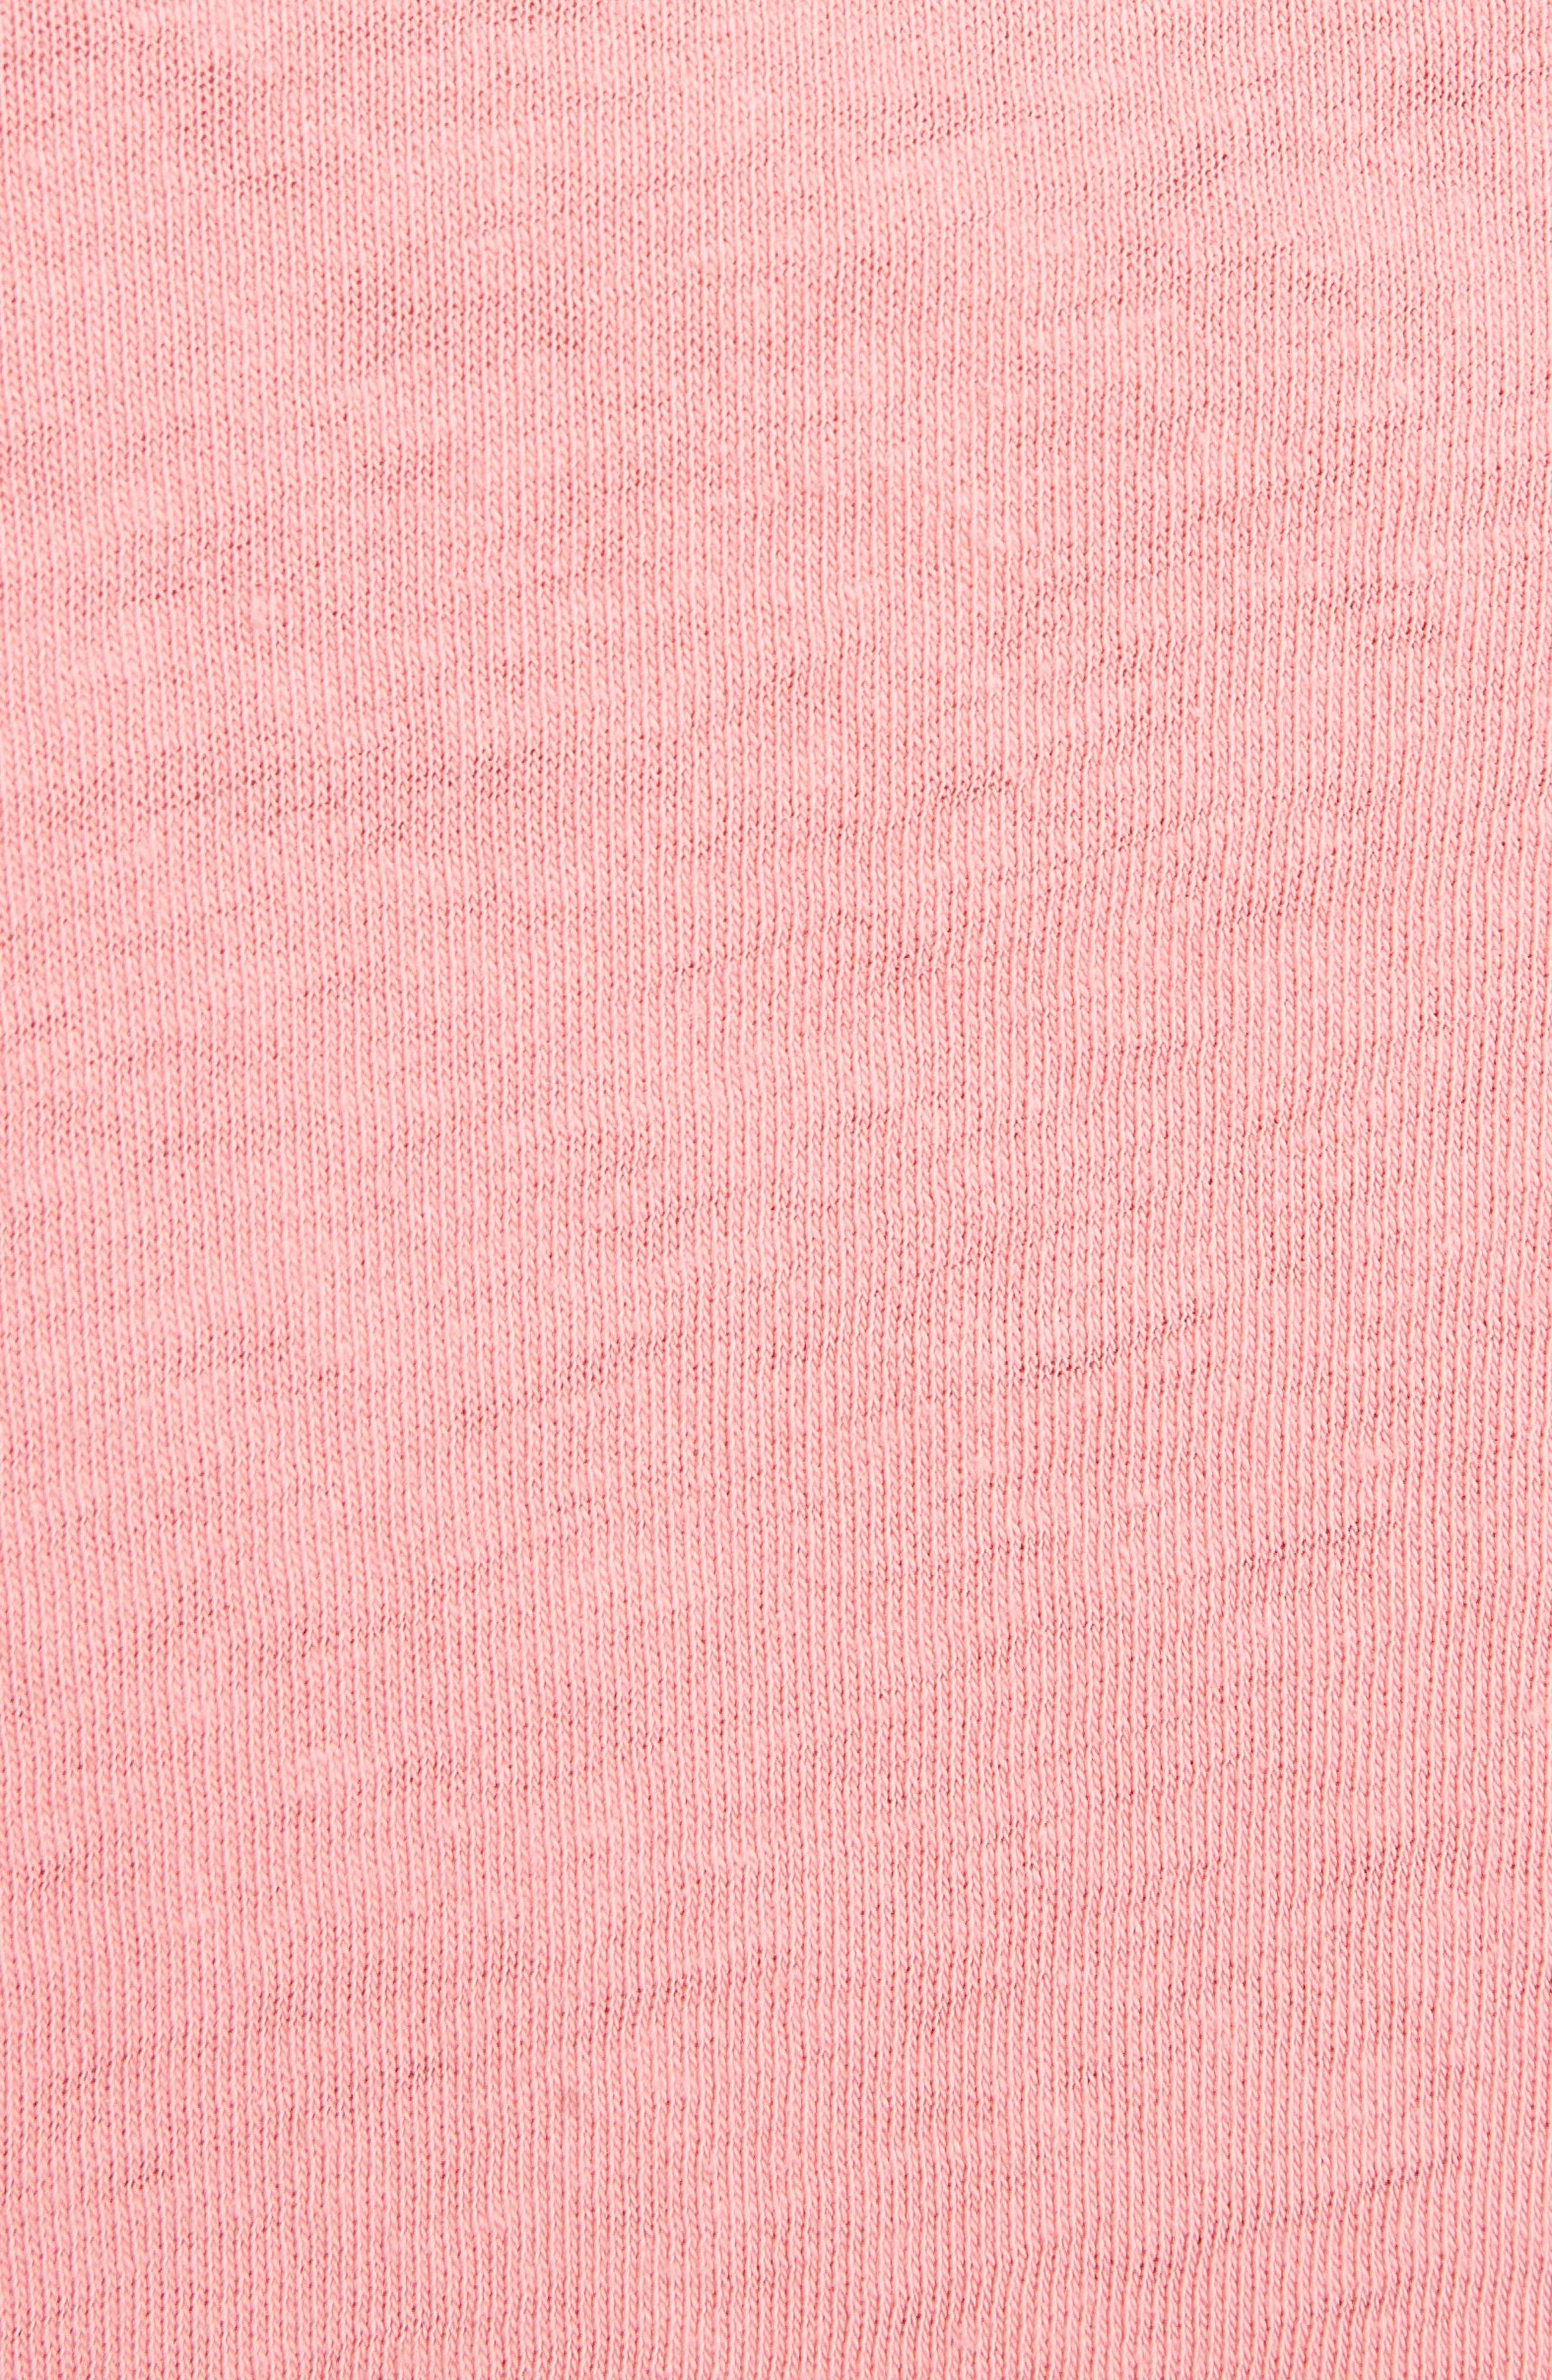 Surf California Tee,                             Alternate thumbnail 5, color,                             CANDY PINK